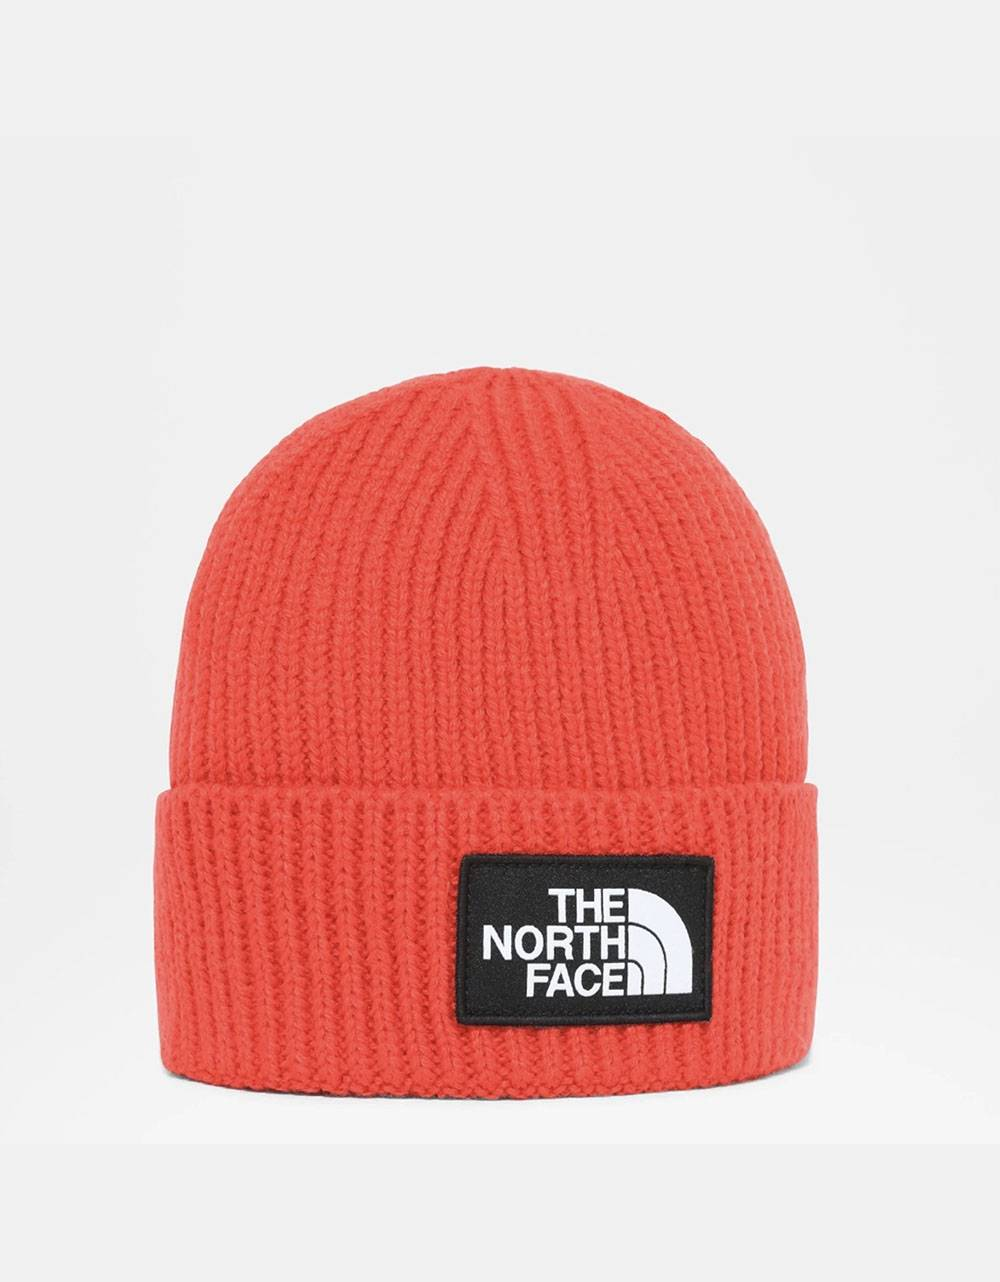 The North Face box logo cuff beanie - flare THE NORTH FACE Beanie 28,69 €